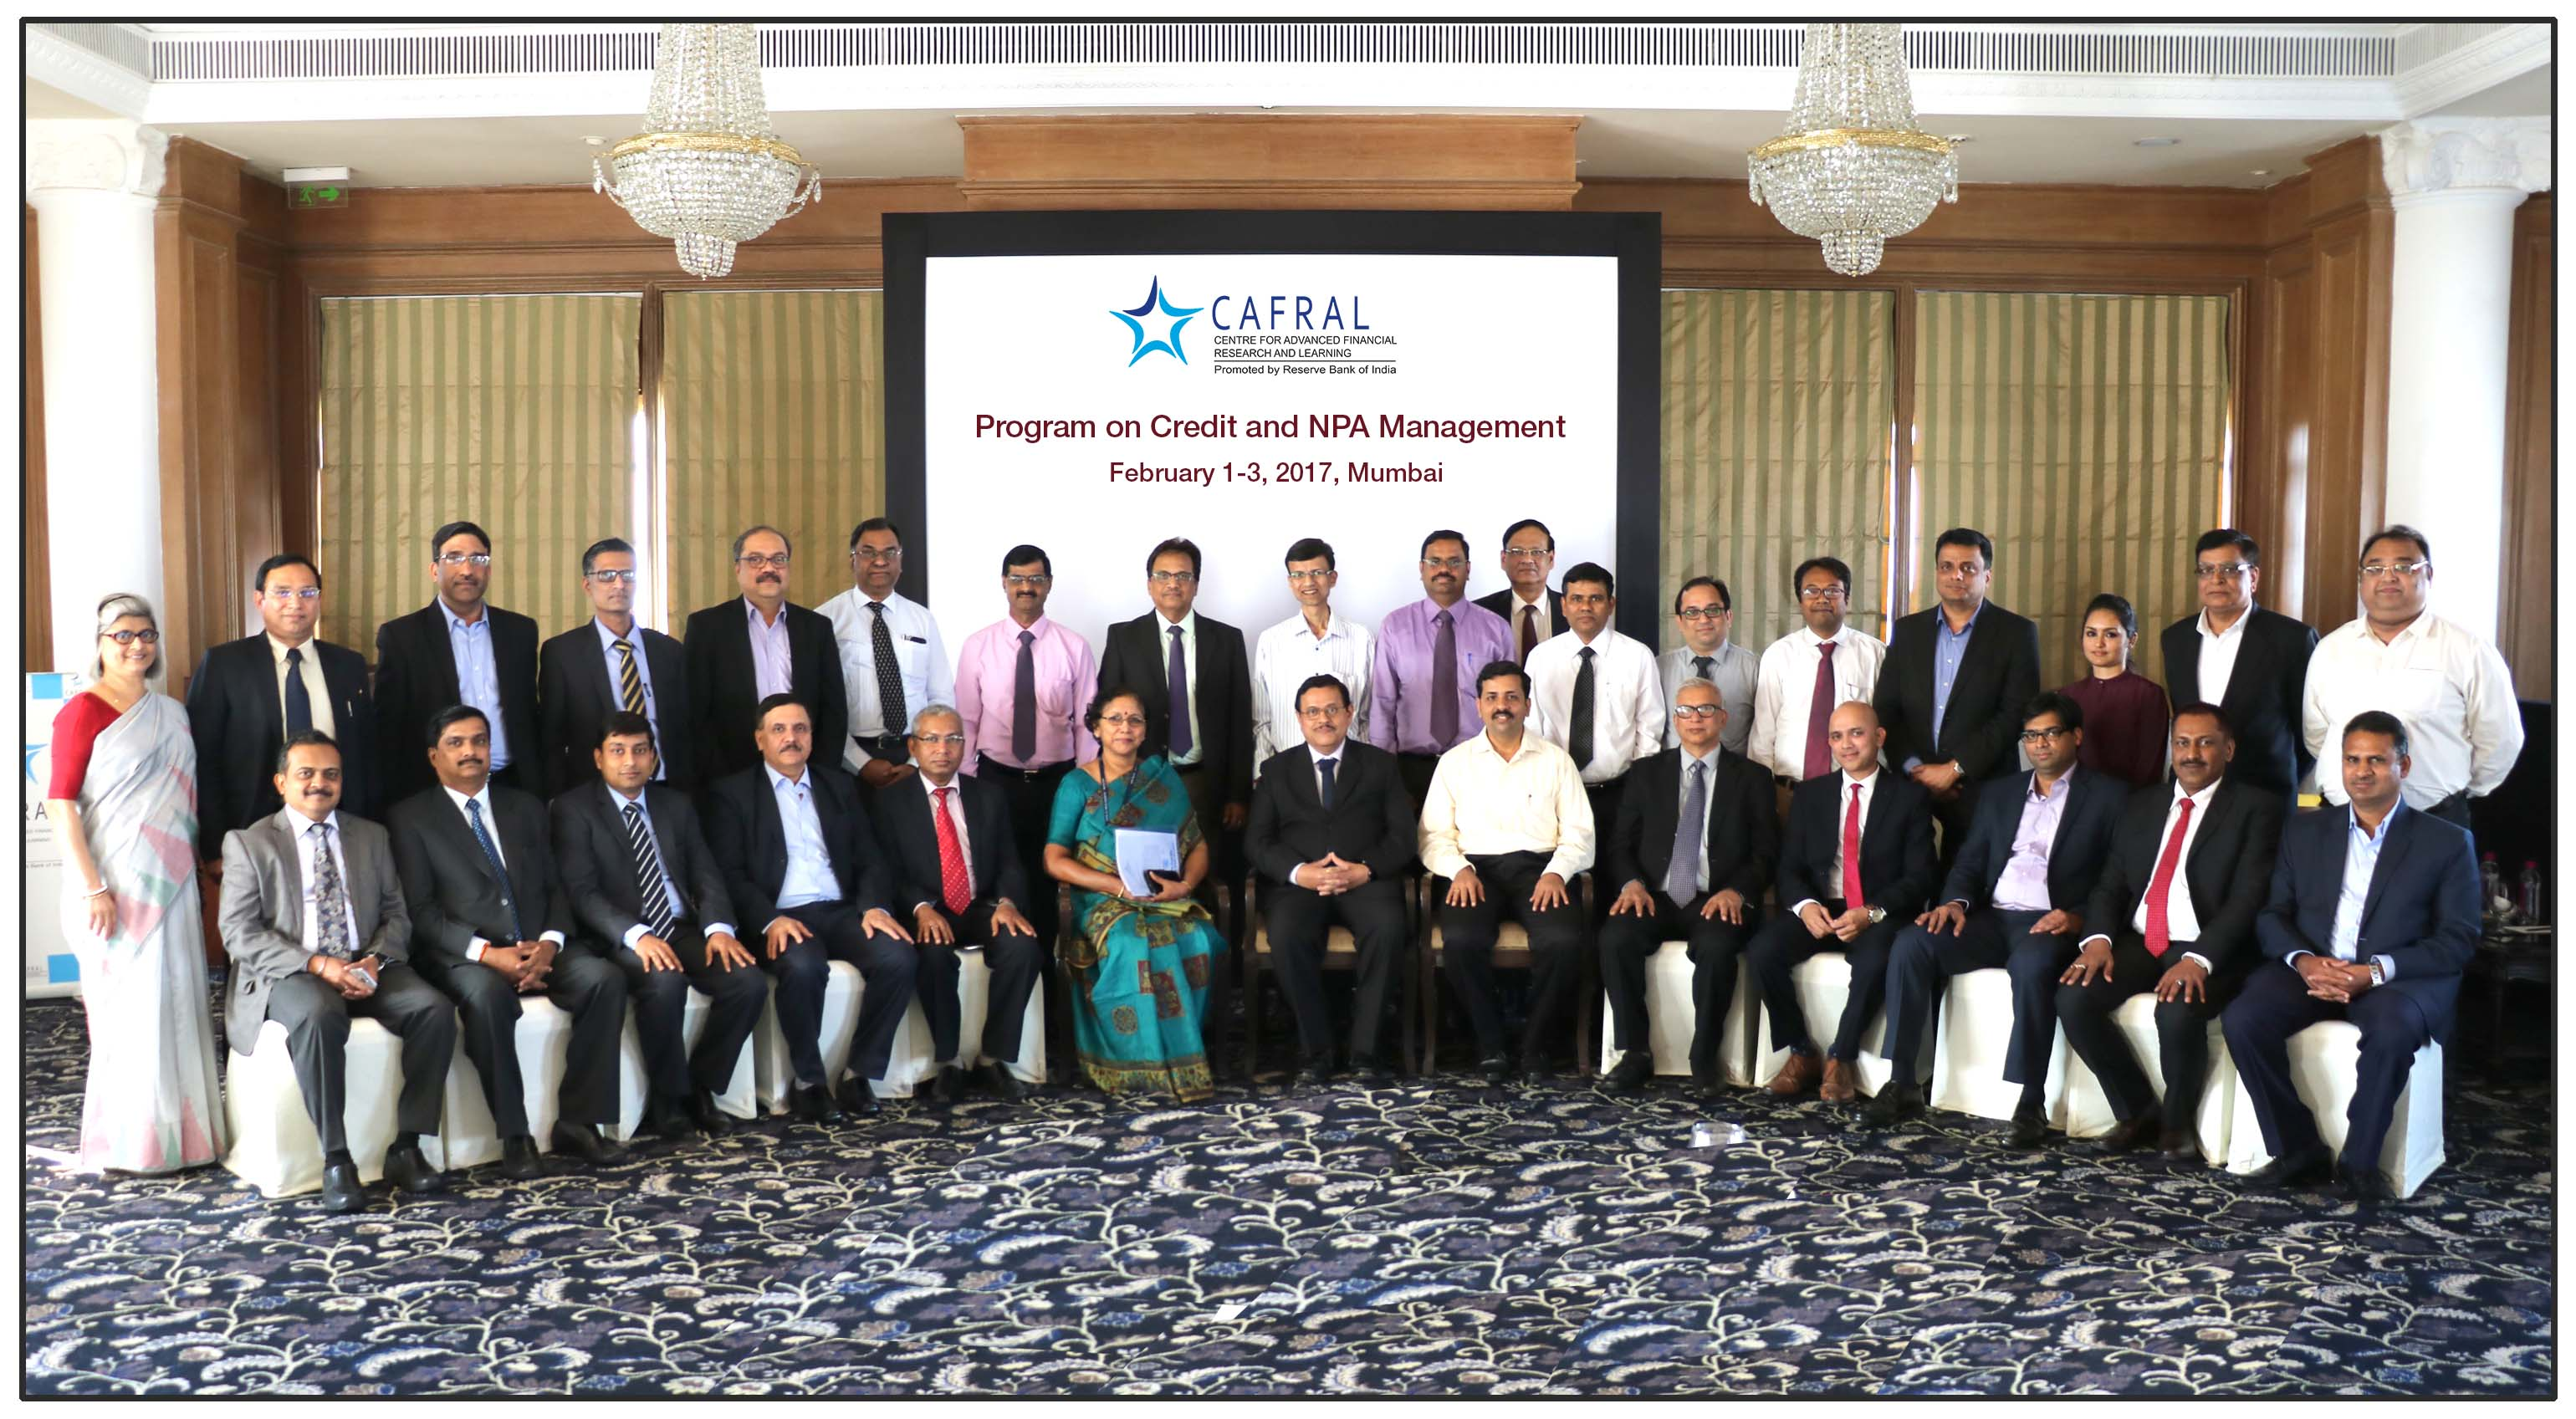 Photos from the CAFRAL Program on Credit and NPA Management 2017